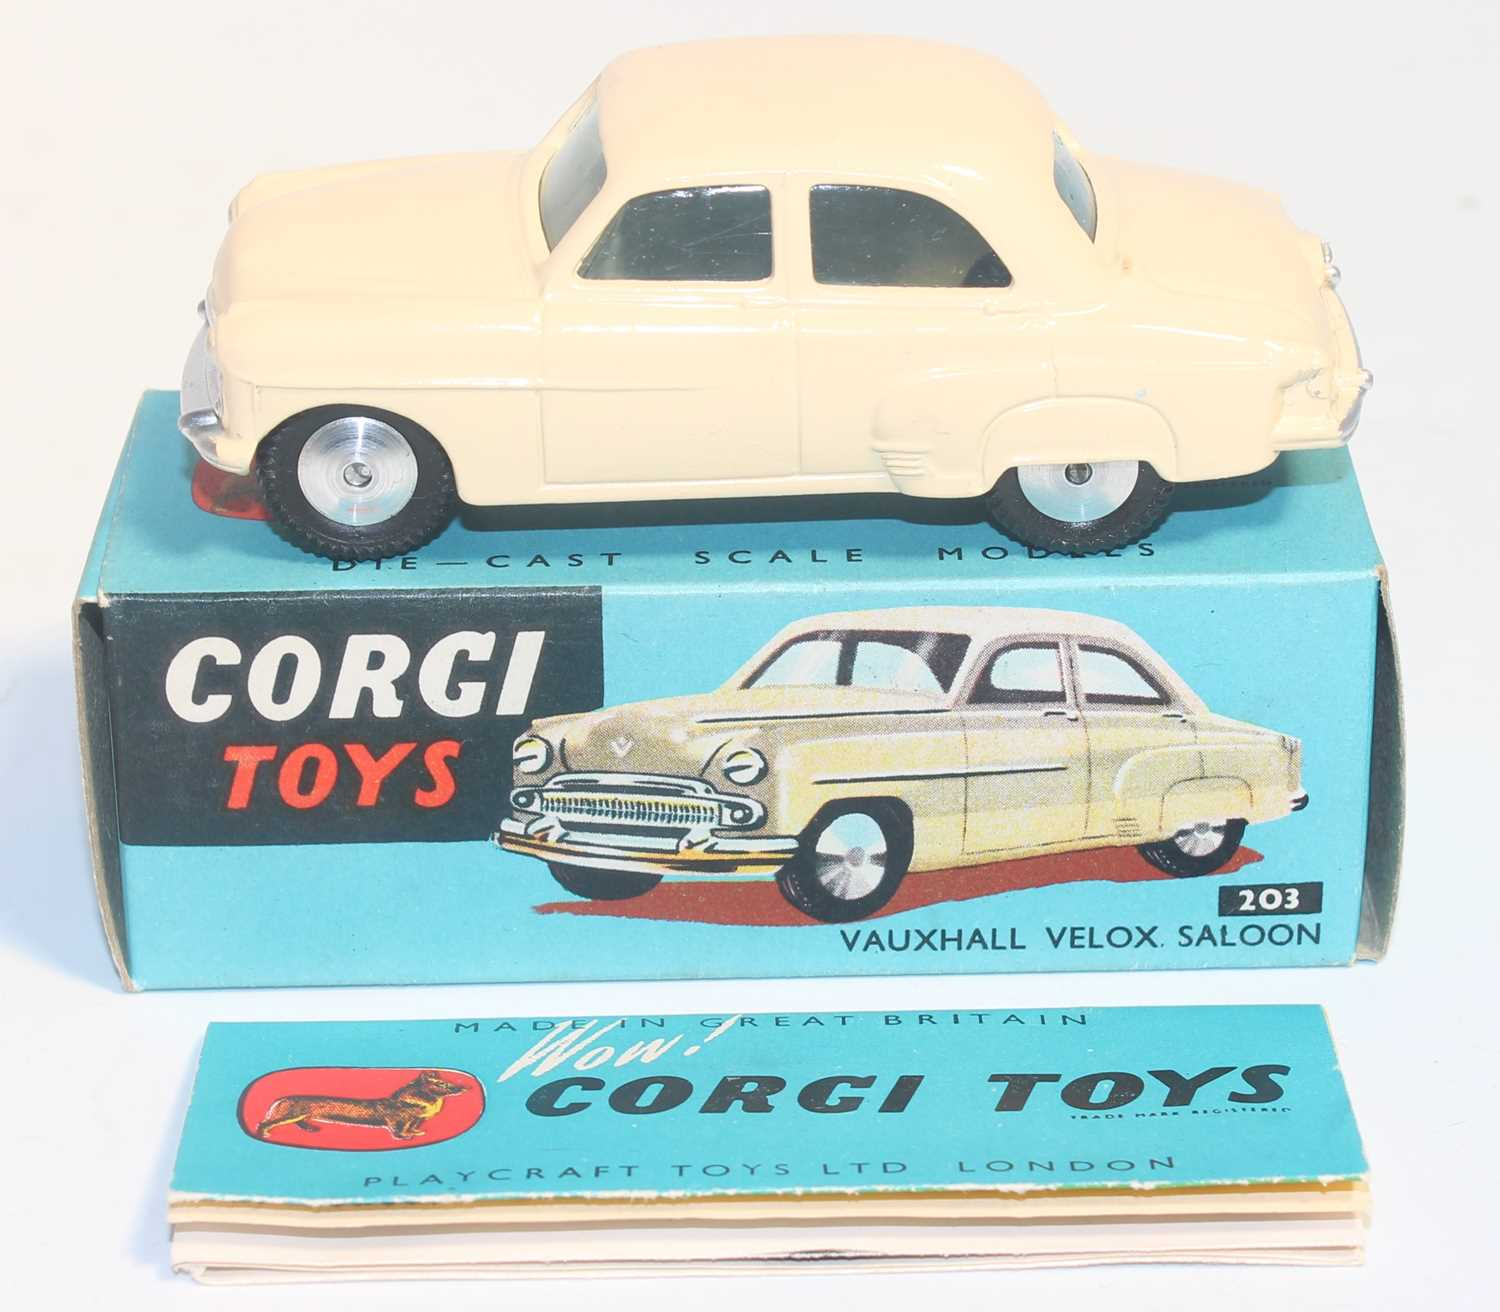 A Corgi Toys No. 203 Vauxhall Velox in cream colour with spun hubs, near mint to mint condition, - Image 3 of 3